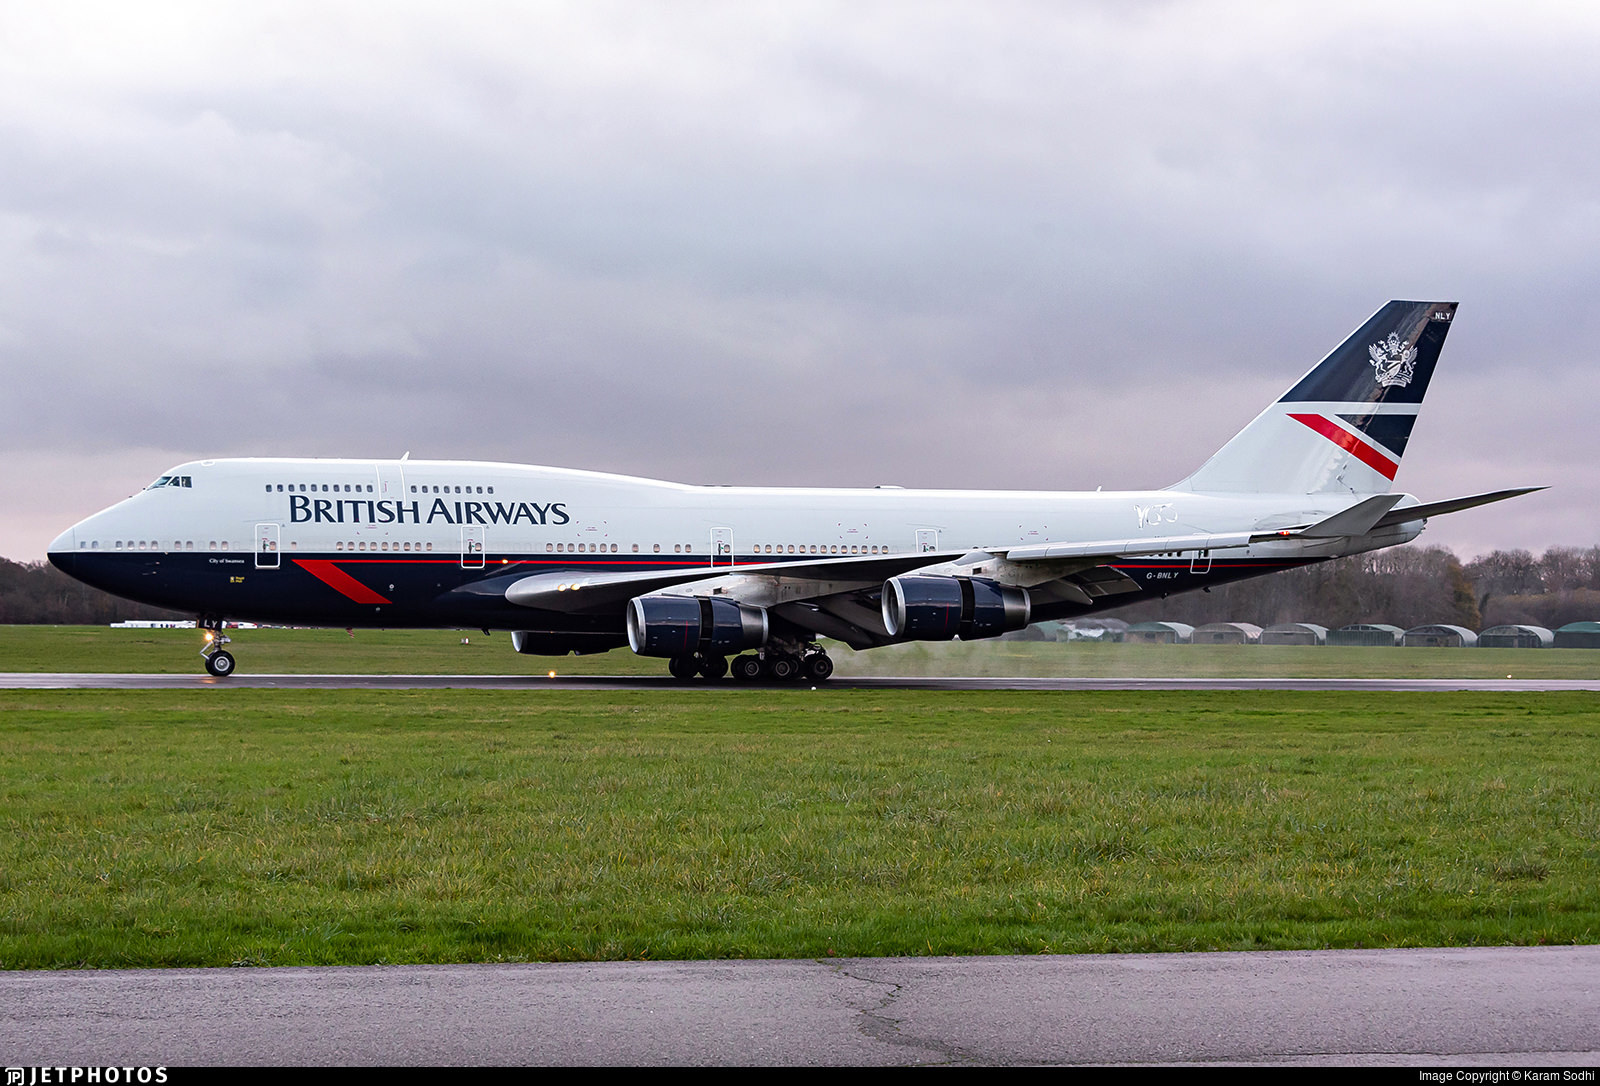 British Airways 747 in Landor livery